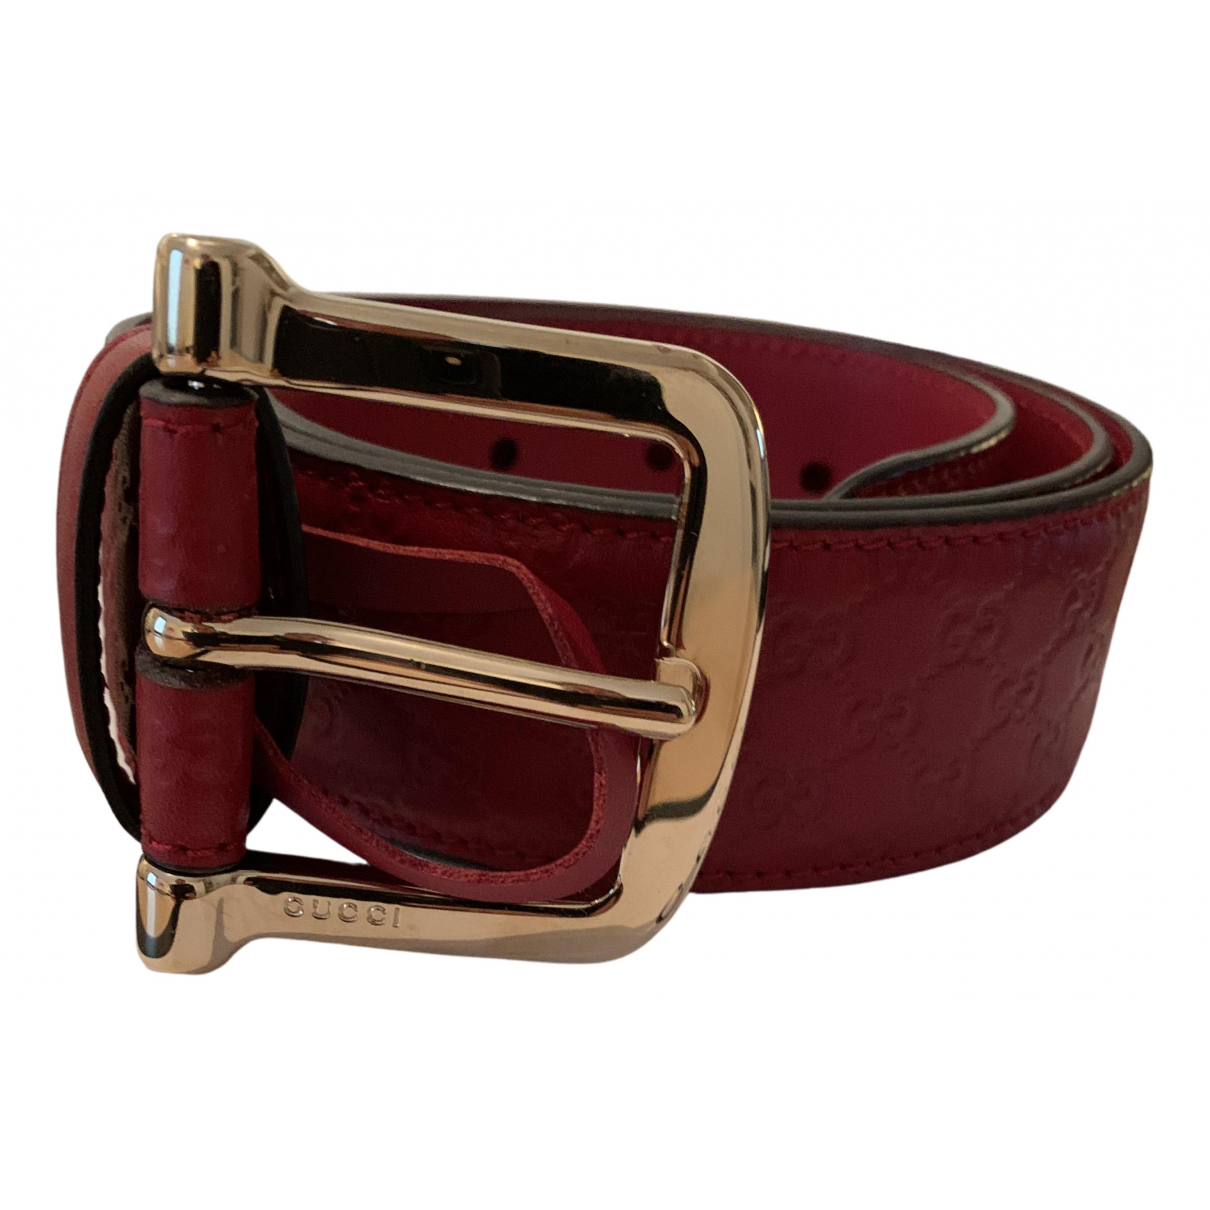 Gucci N Red Leather belt for Women 80 cm